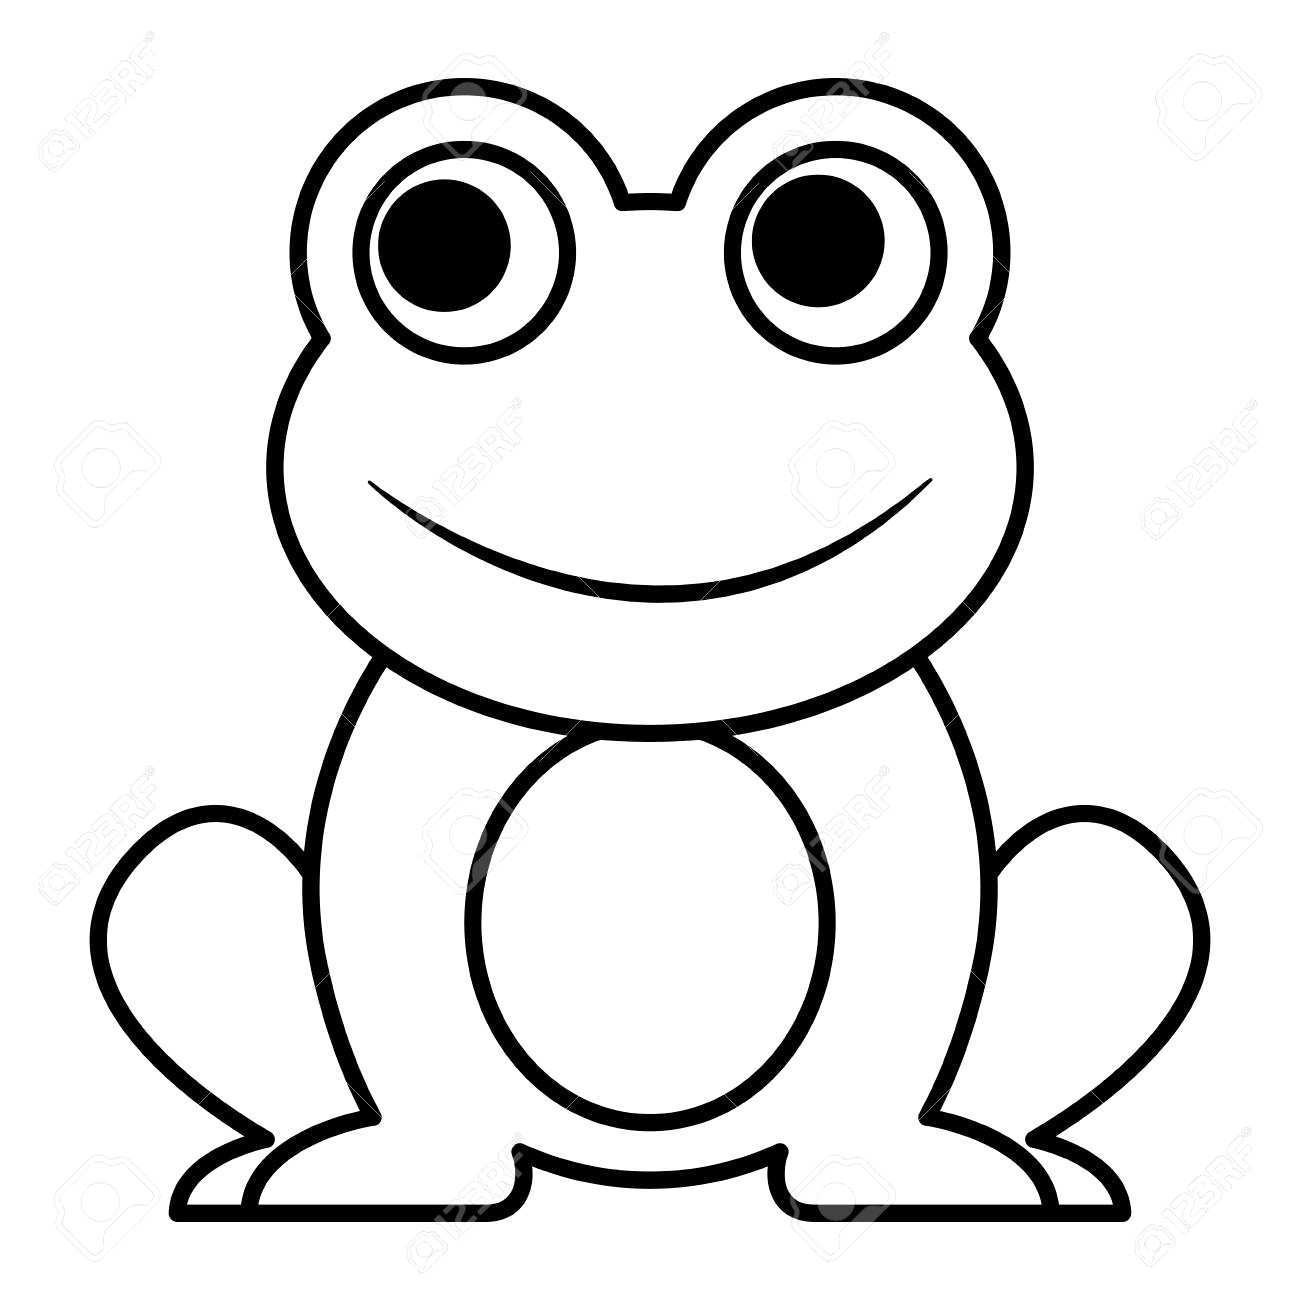 how to draw a frog easy how to draw a frog step by step fresh water animals how a frog draw to easy